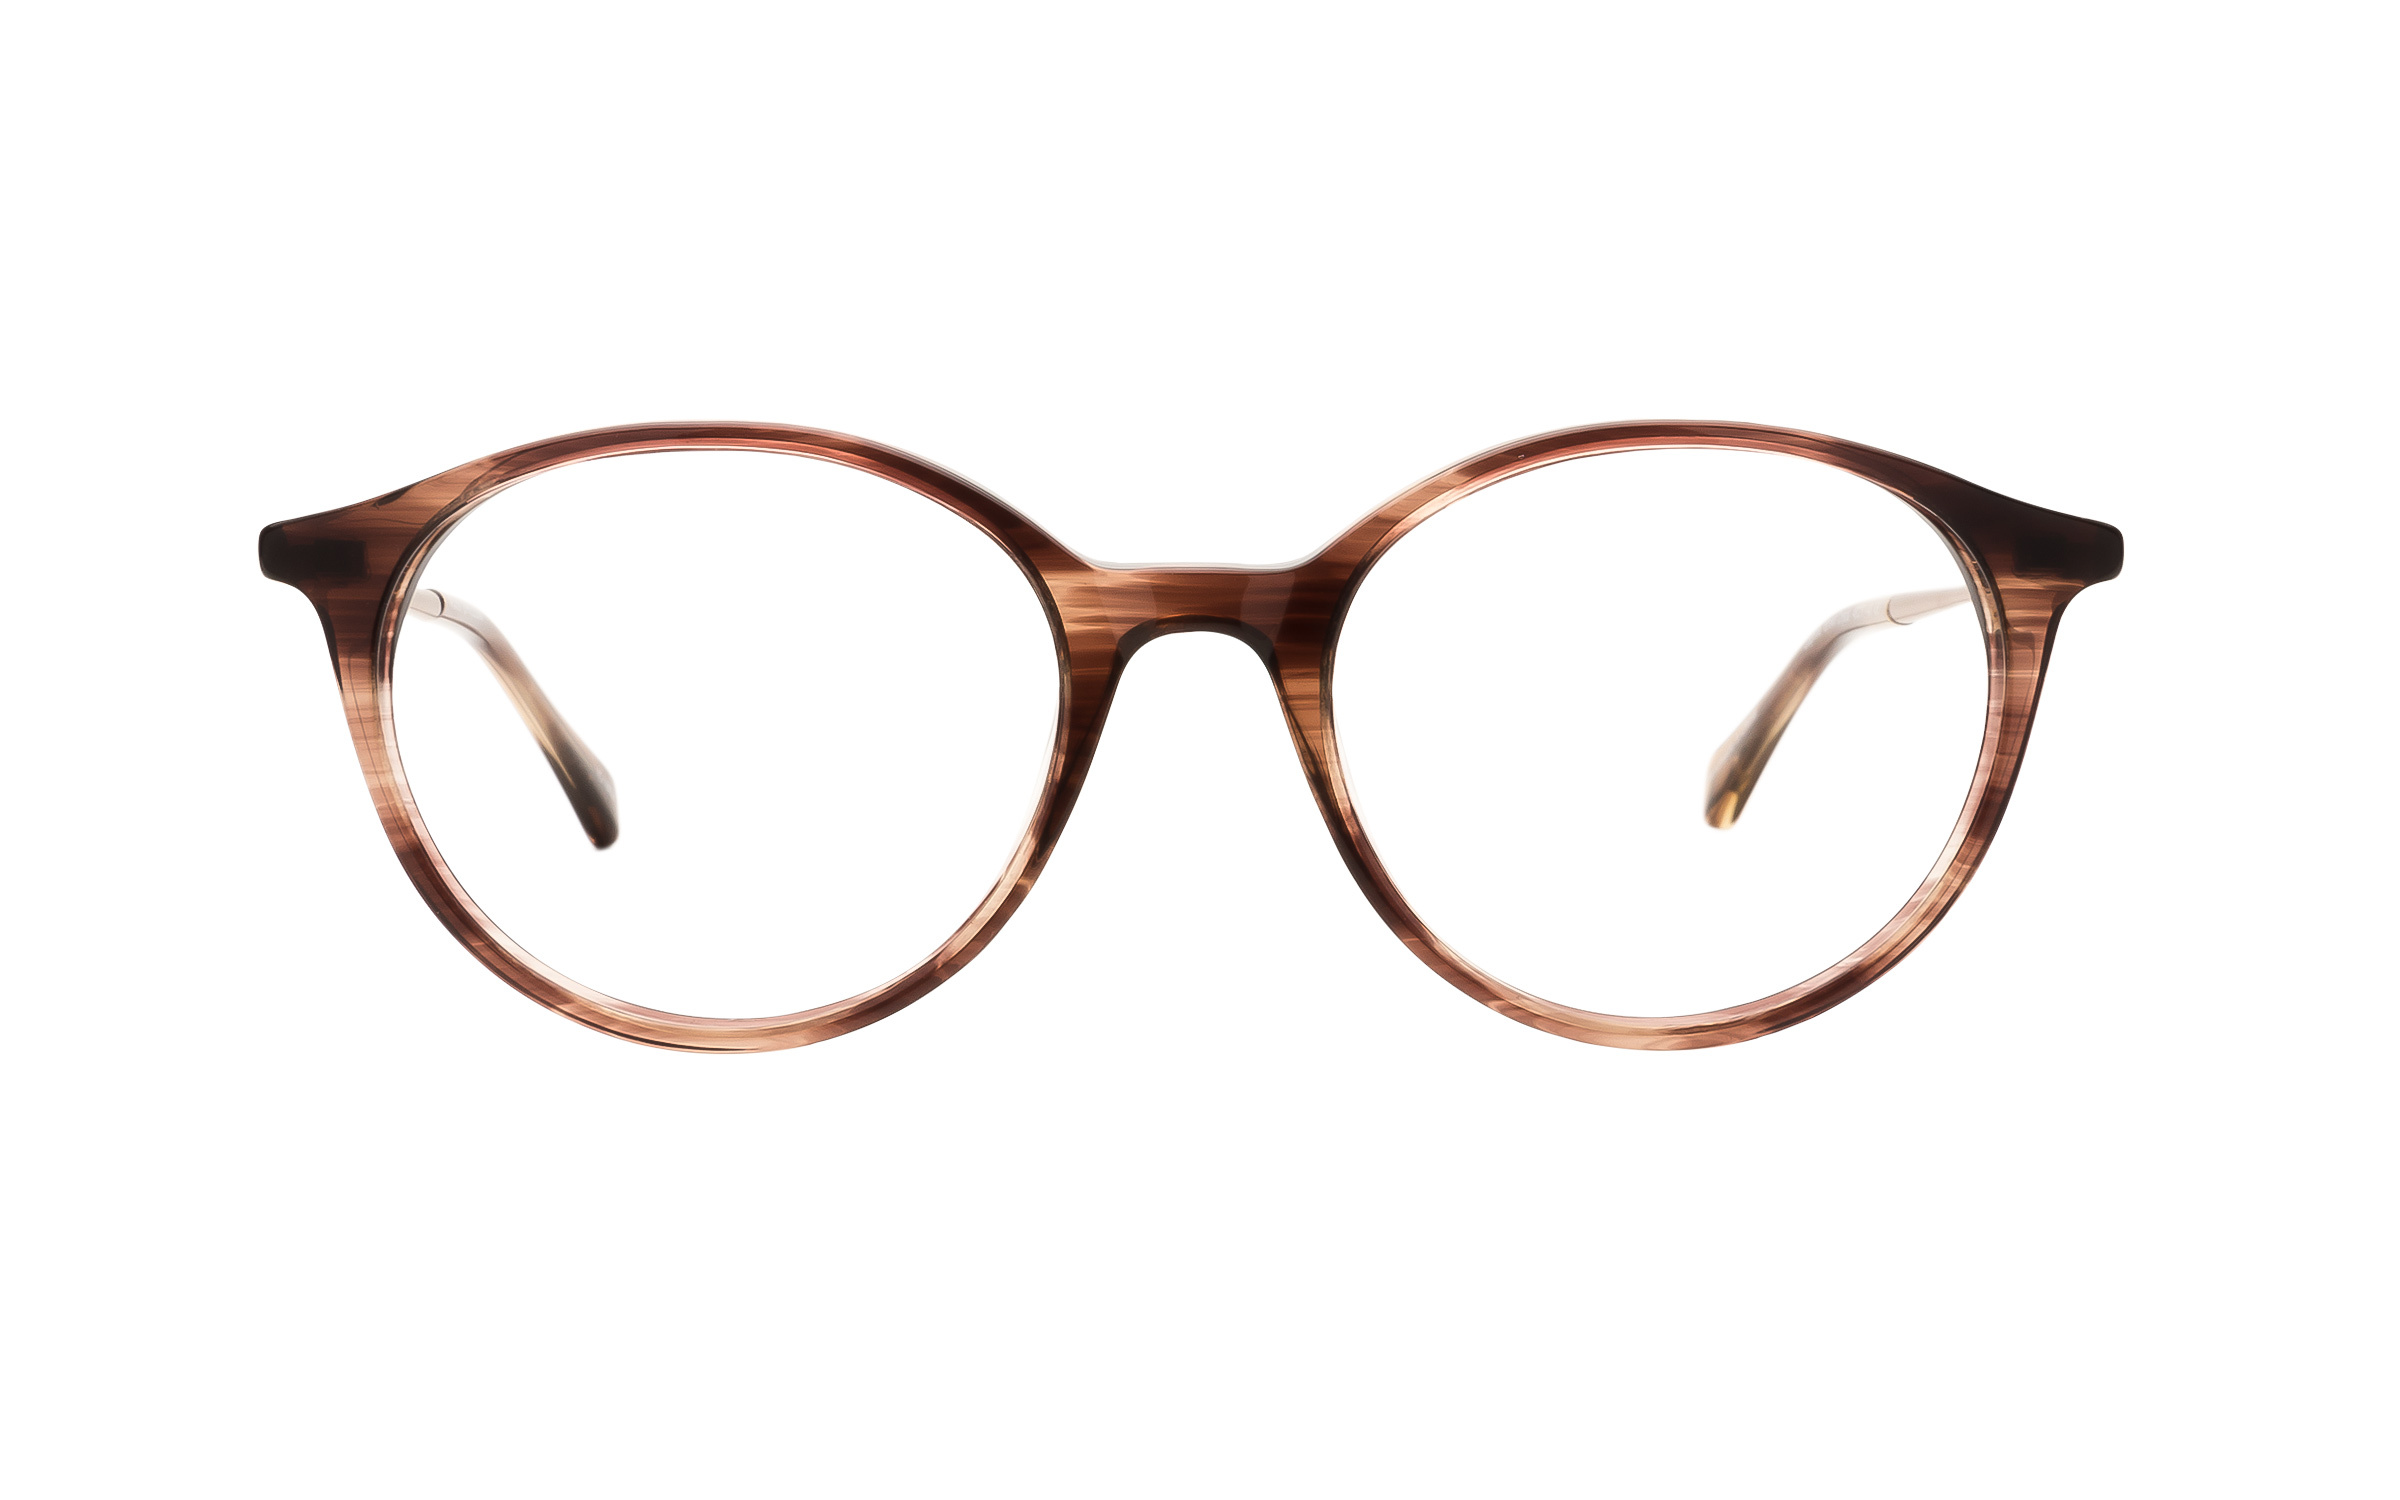 Kam_Dhillon_Womens_Glasses_Round_BrownClear_PlasticMetal_Online_Coastal